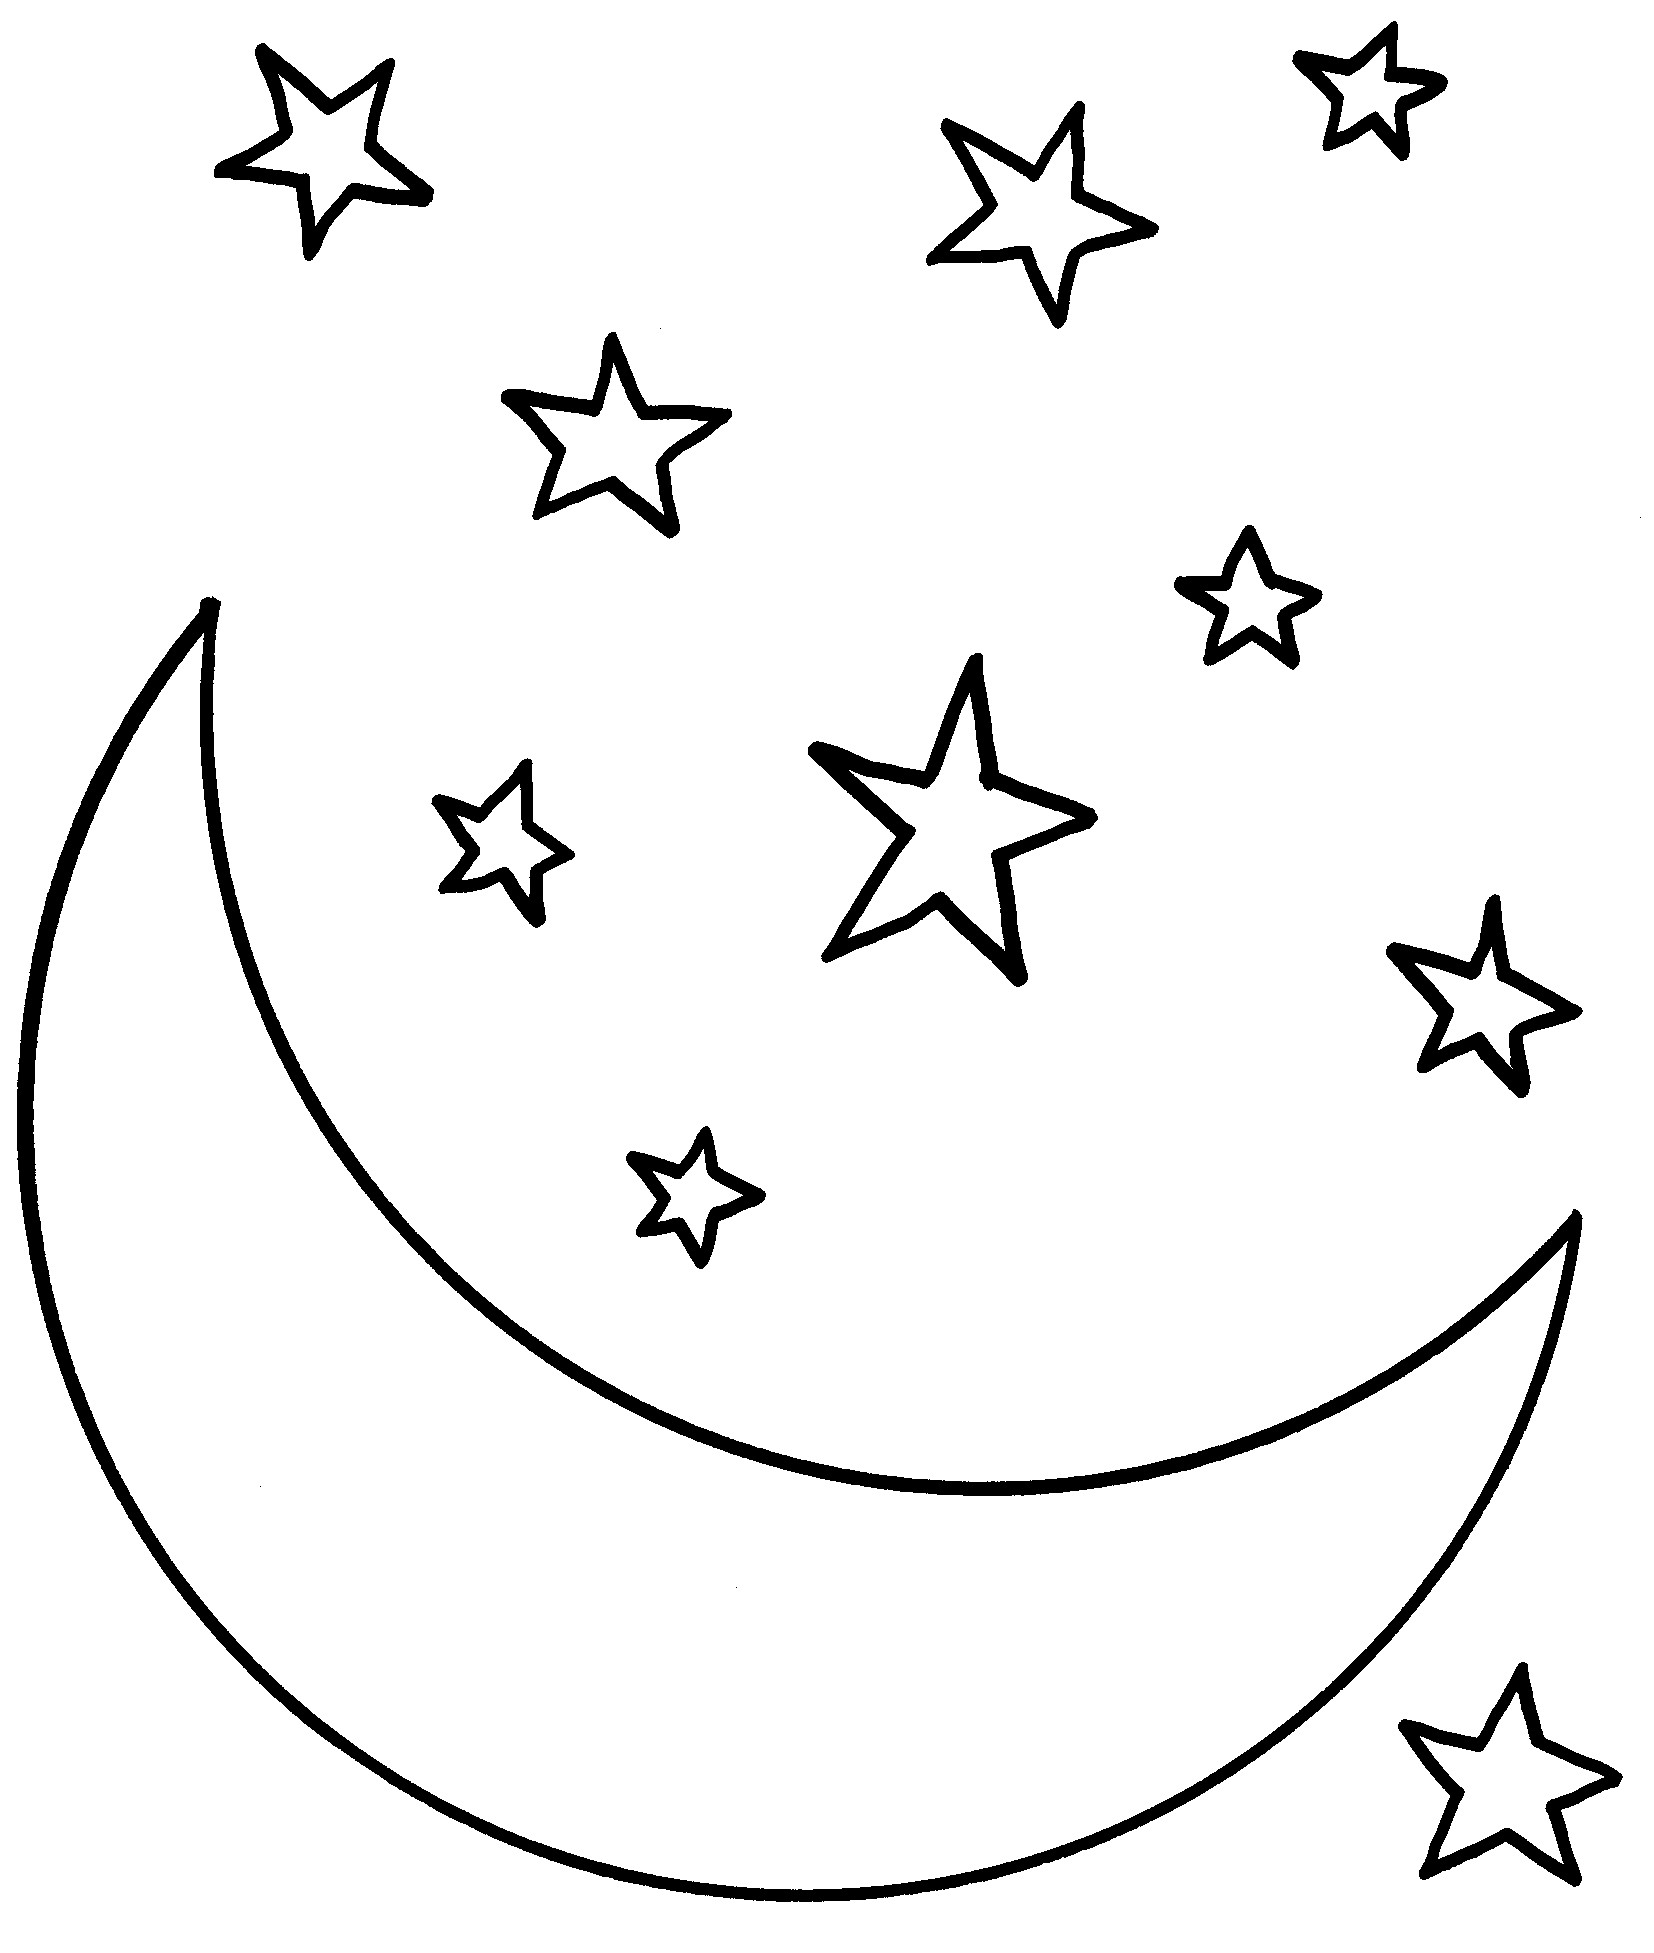 Stars Drawings - Cliparts.co